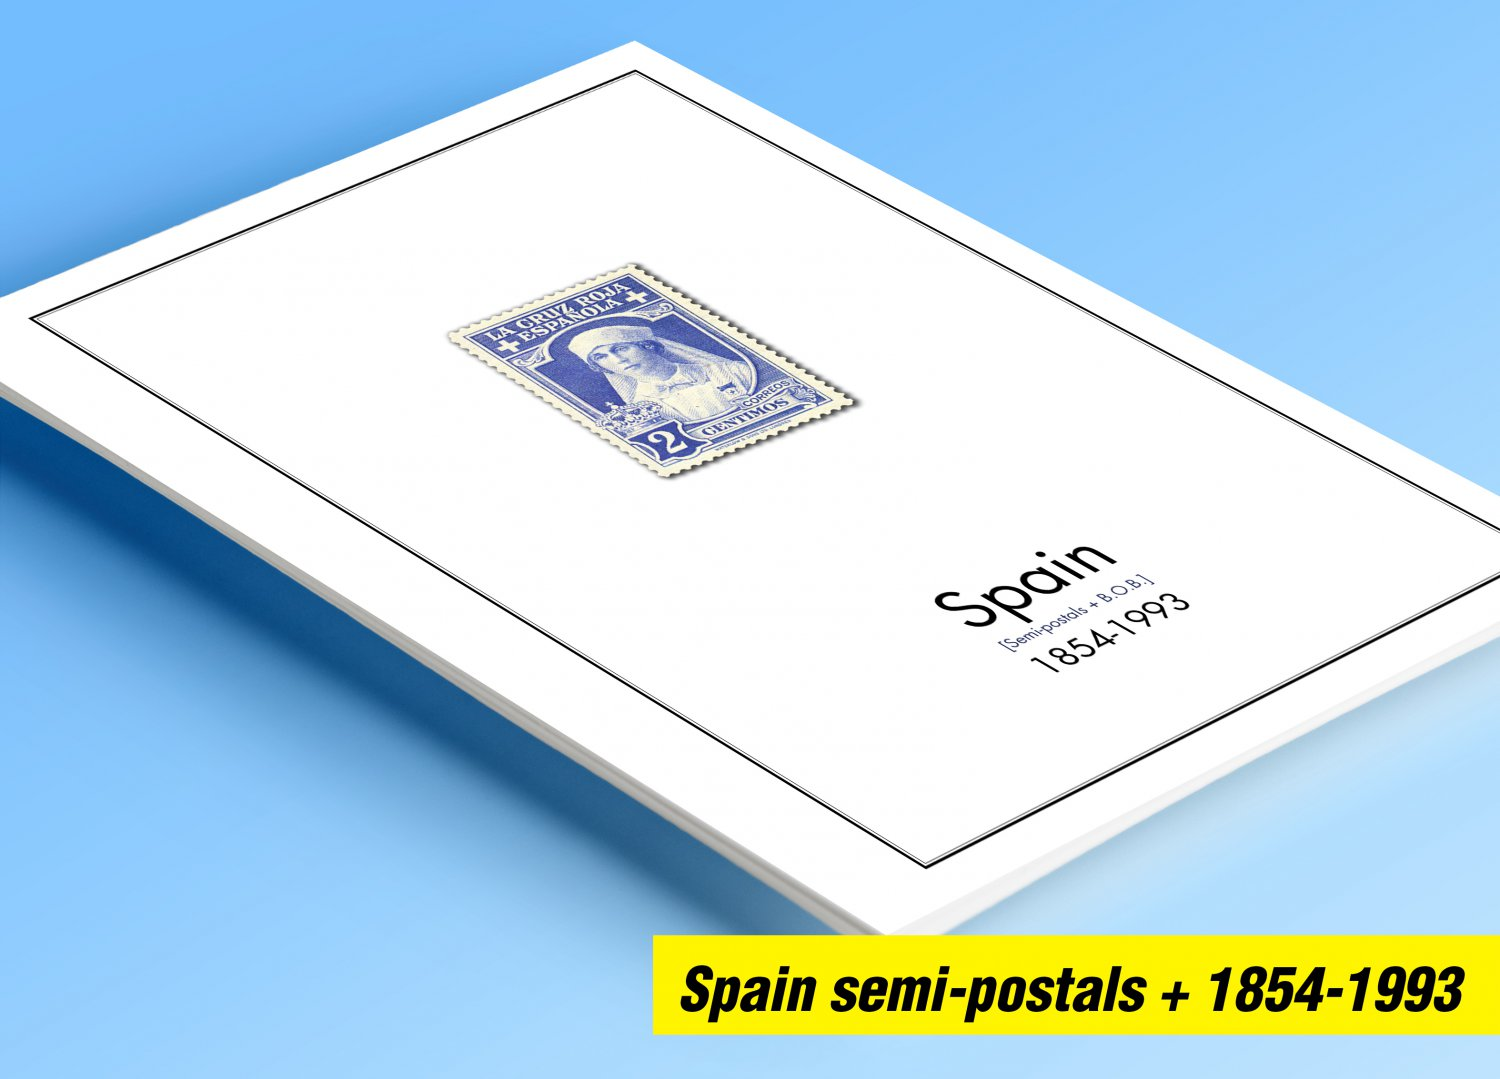 COLOR PRINTED SPAIN SEMI-POSTALS + BOB ISSUES 1854-1993 STAMP ALBUM PAGES (47 illustrated pages)